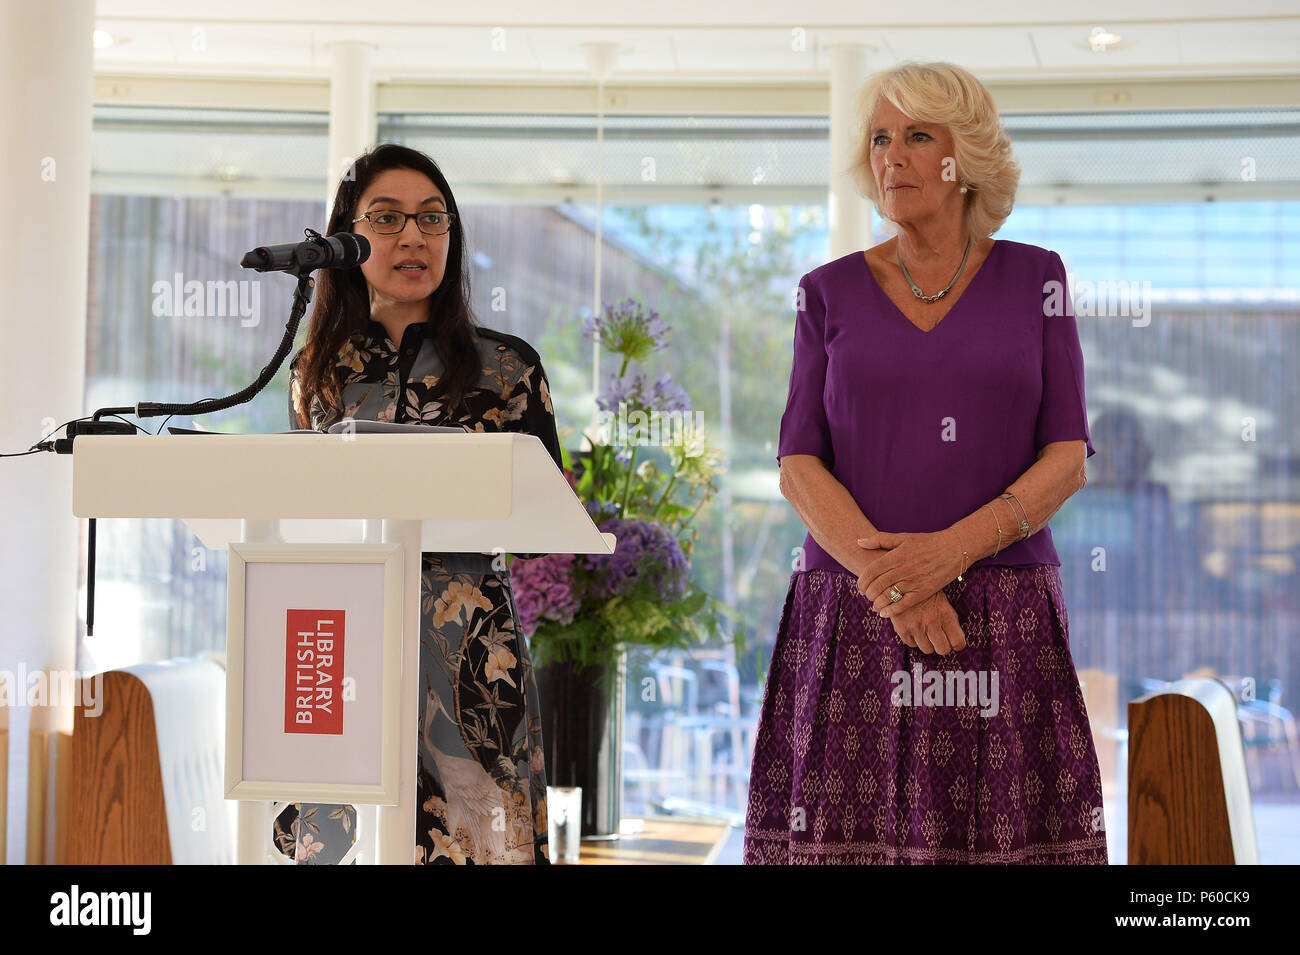 RSL Fellow Tahmima Anam (left) speaking as the Duchess of Cornwall attends a reception at the British Library in London hosted by the Royal Society of Literature where '40 under 40' new Fellows will be inducted. - Stock Image